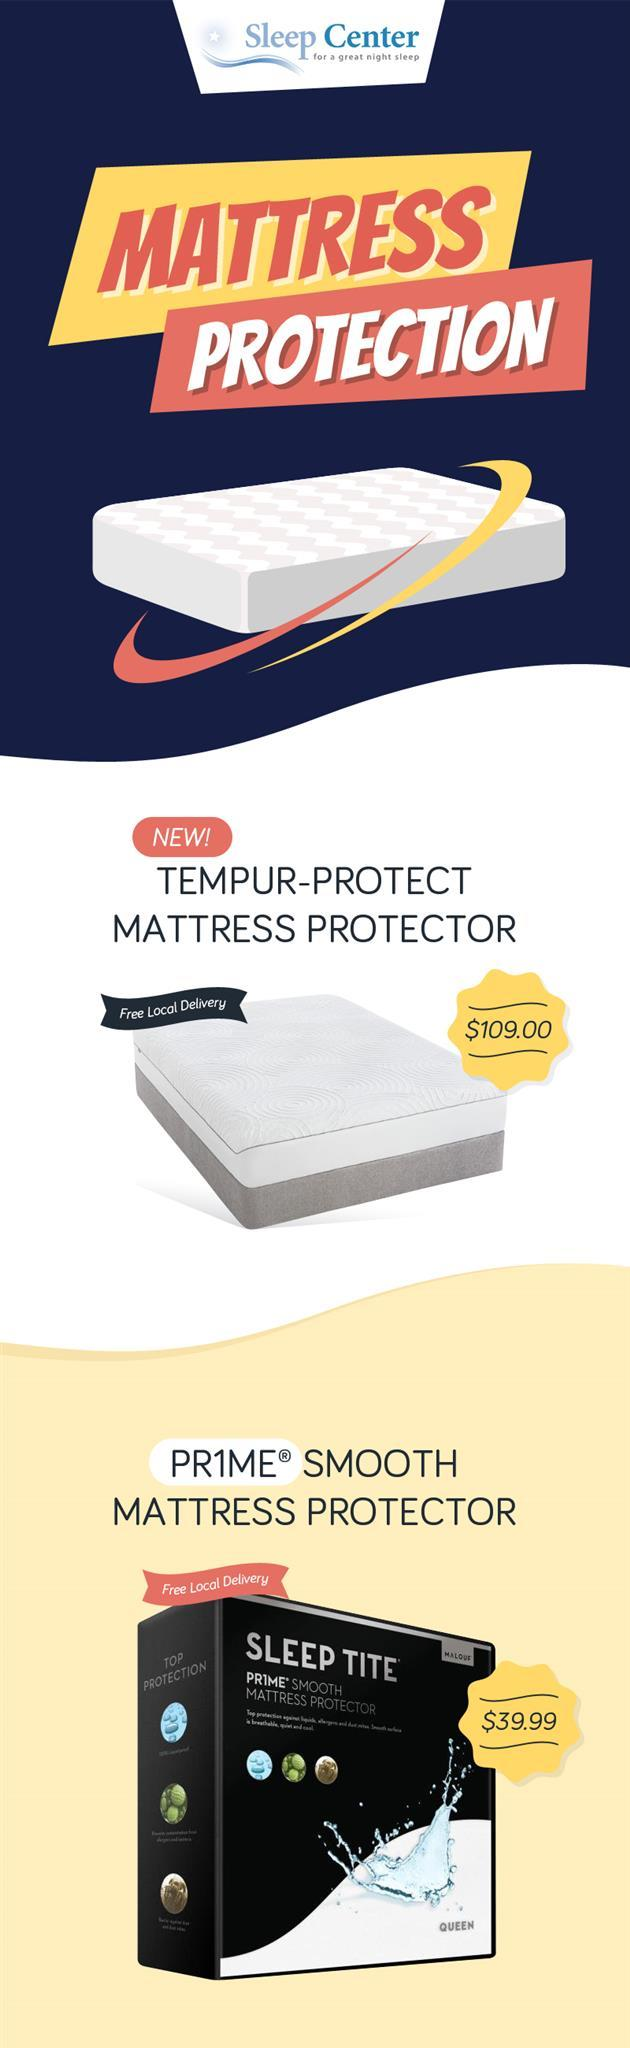 Purchase Quality Mattress Protector in Sacramento from Sleep Center